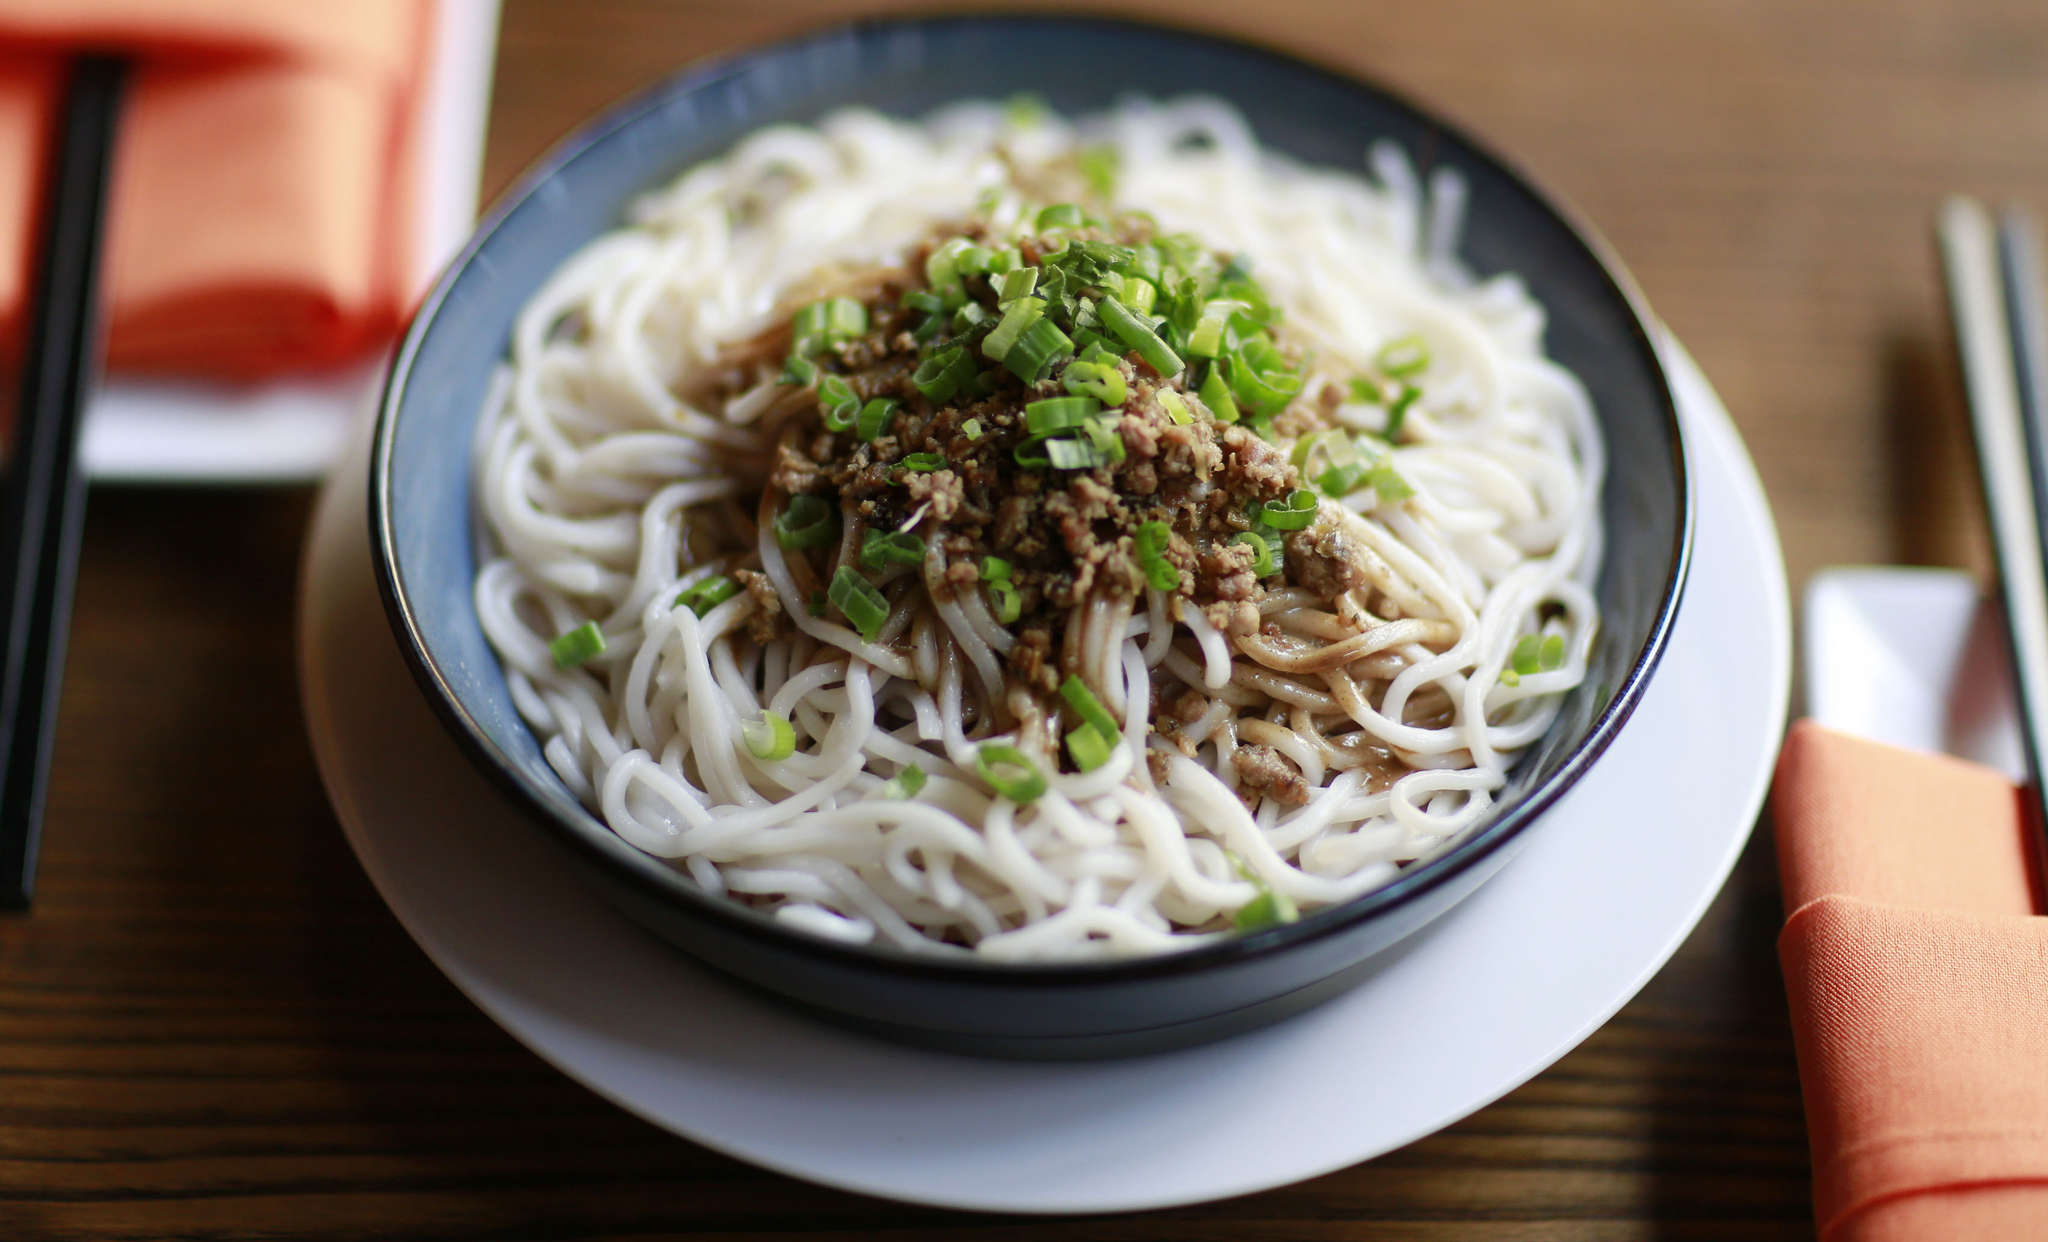 The dandan noodles come in a hot balm of chili oil and minced pork at DanDan, 126 S. 16th St.